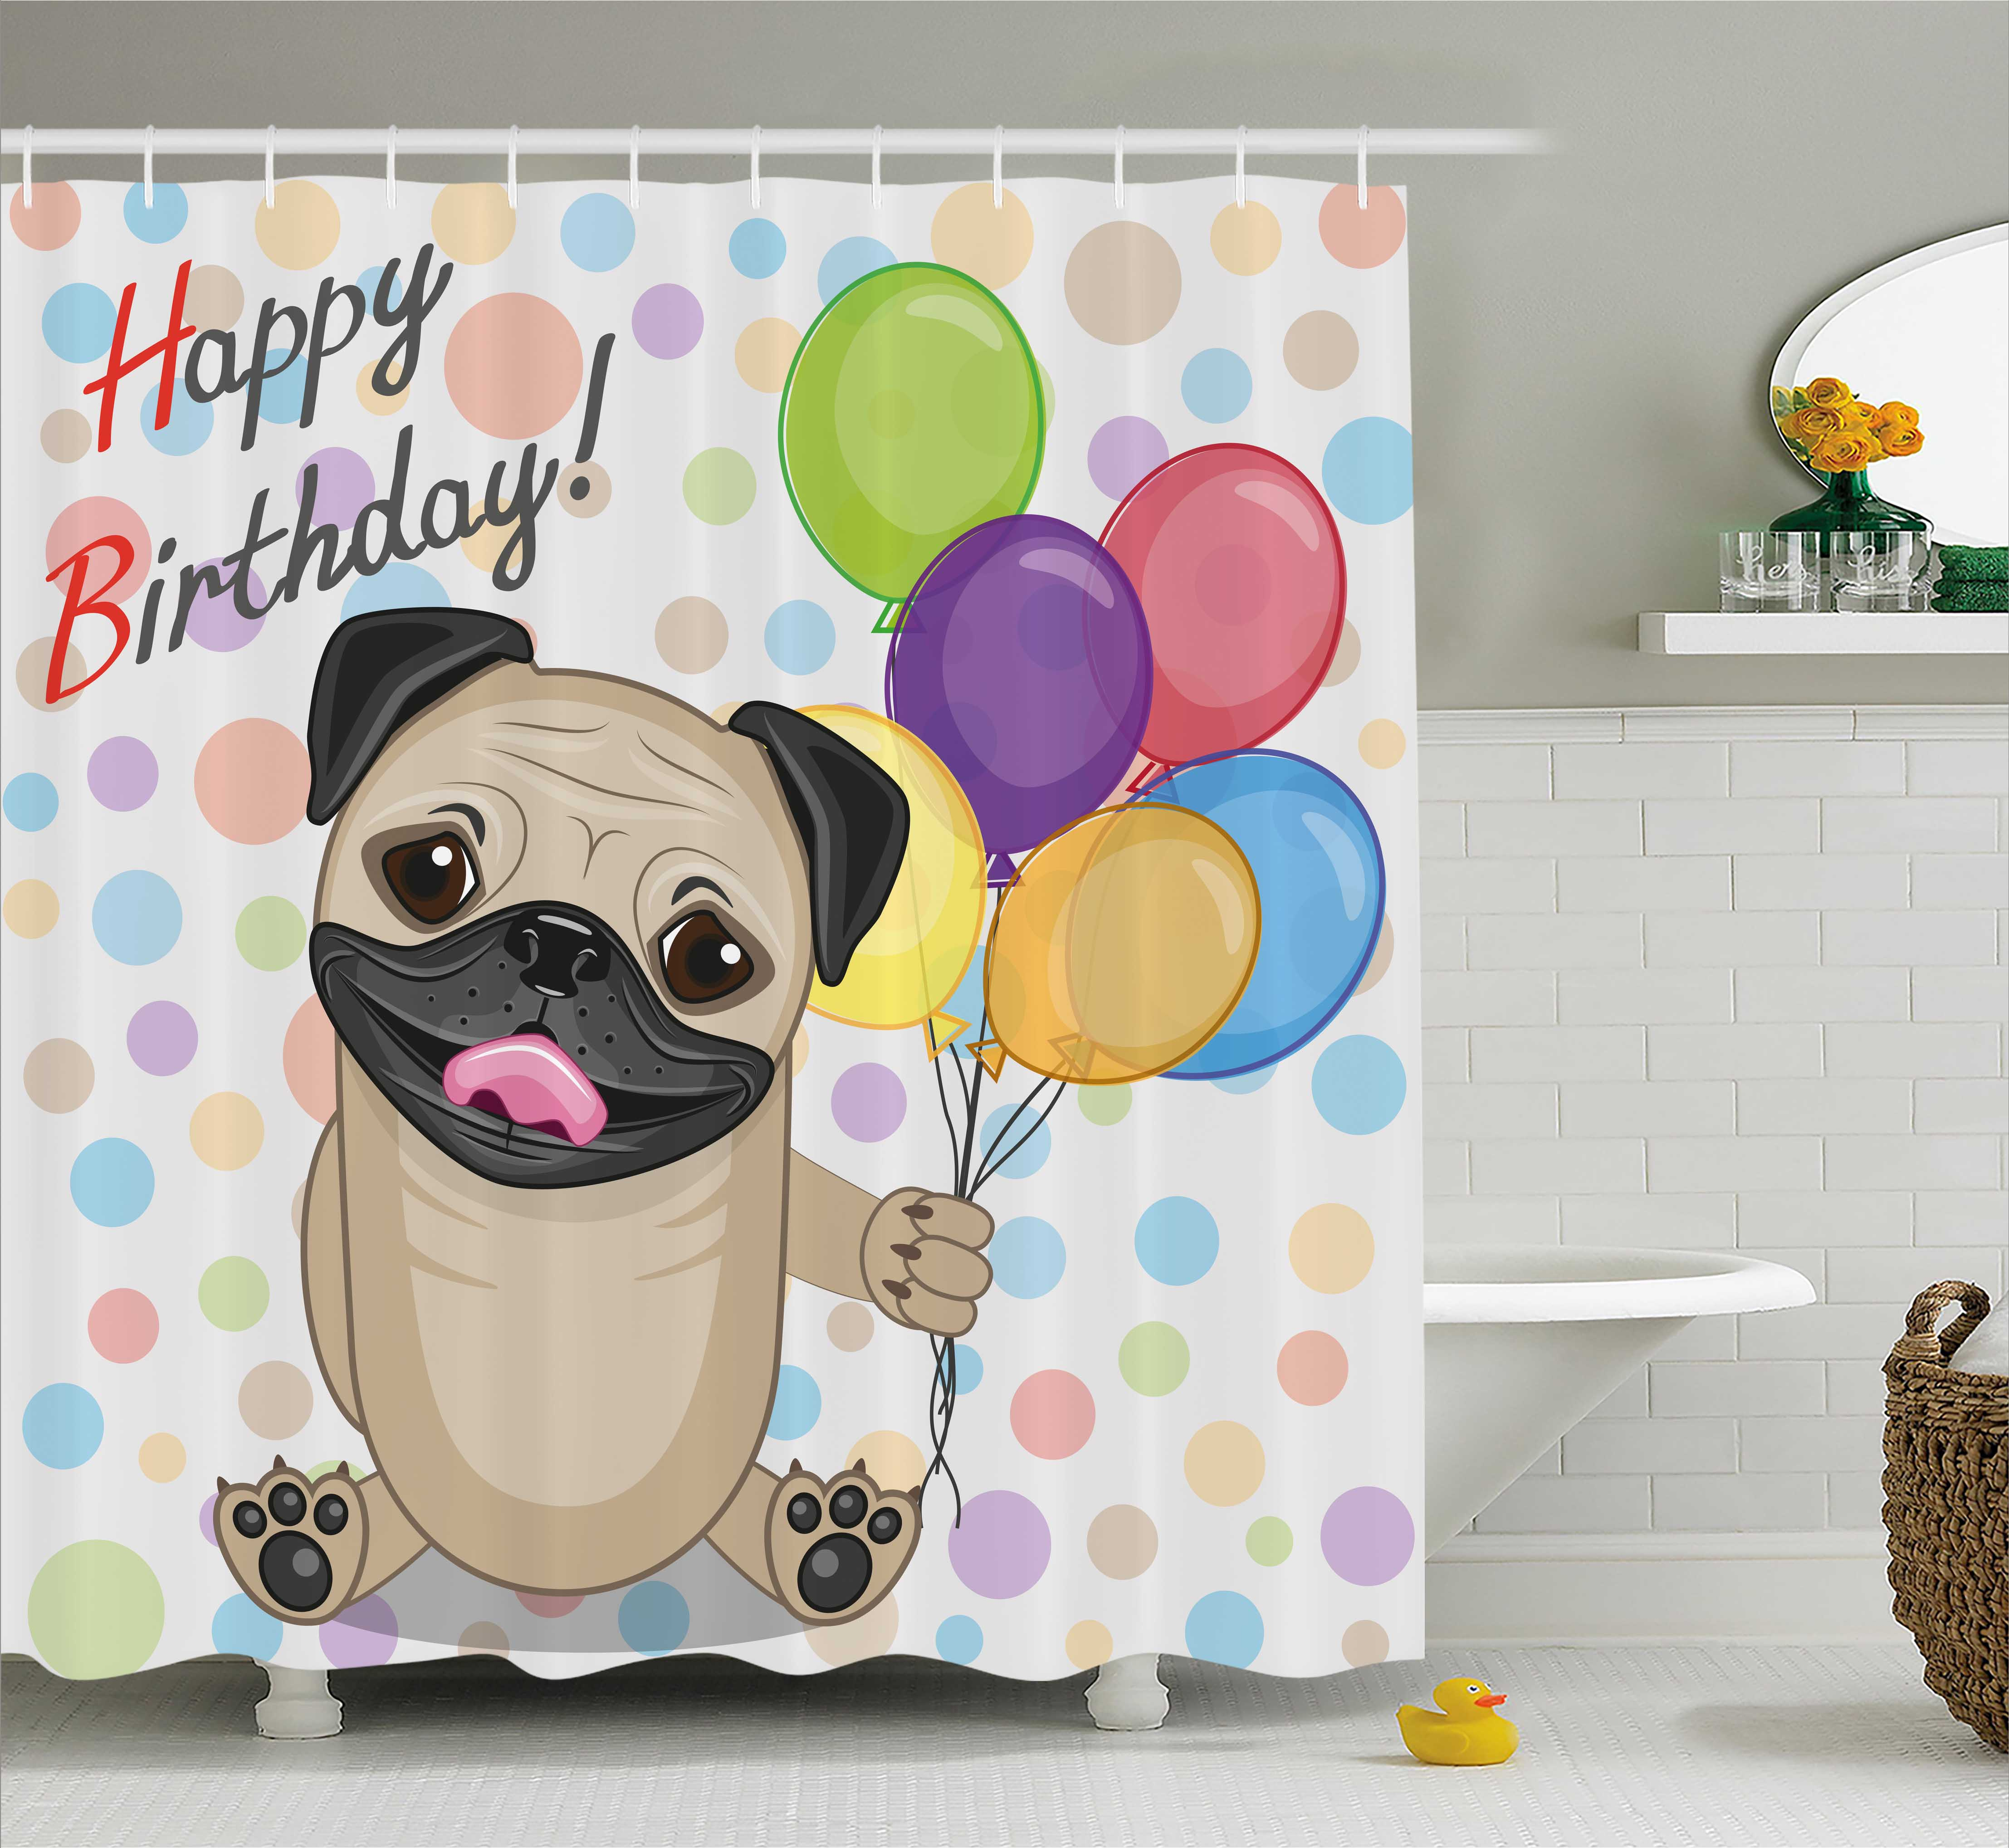 Birthday Decorations for Kids Shower Curtain, Animal Cute Dog Smiling Pug with Party Balloons Greeting Card, Fabric Bathroom Set with Hooks, 69W X 70L Inches, Multicolor, by Ambesonne